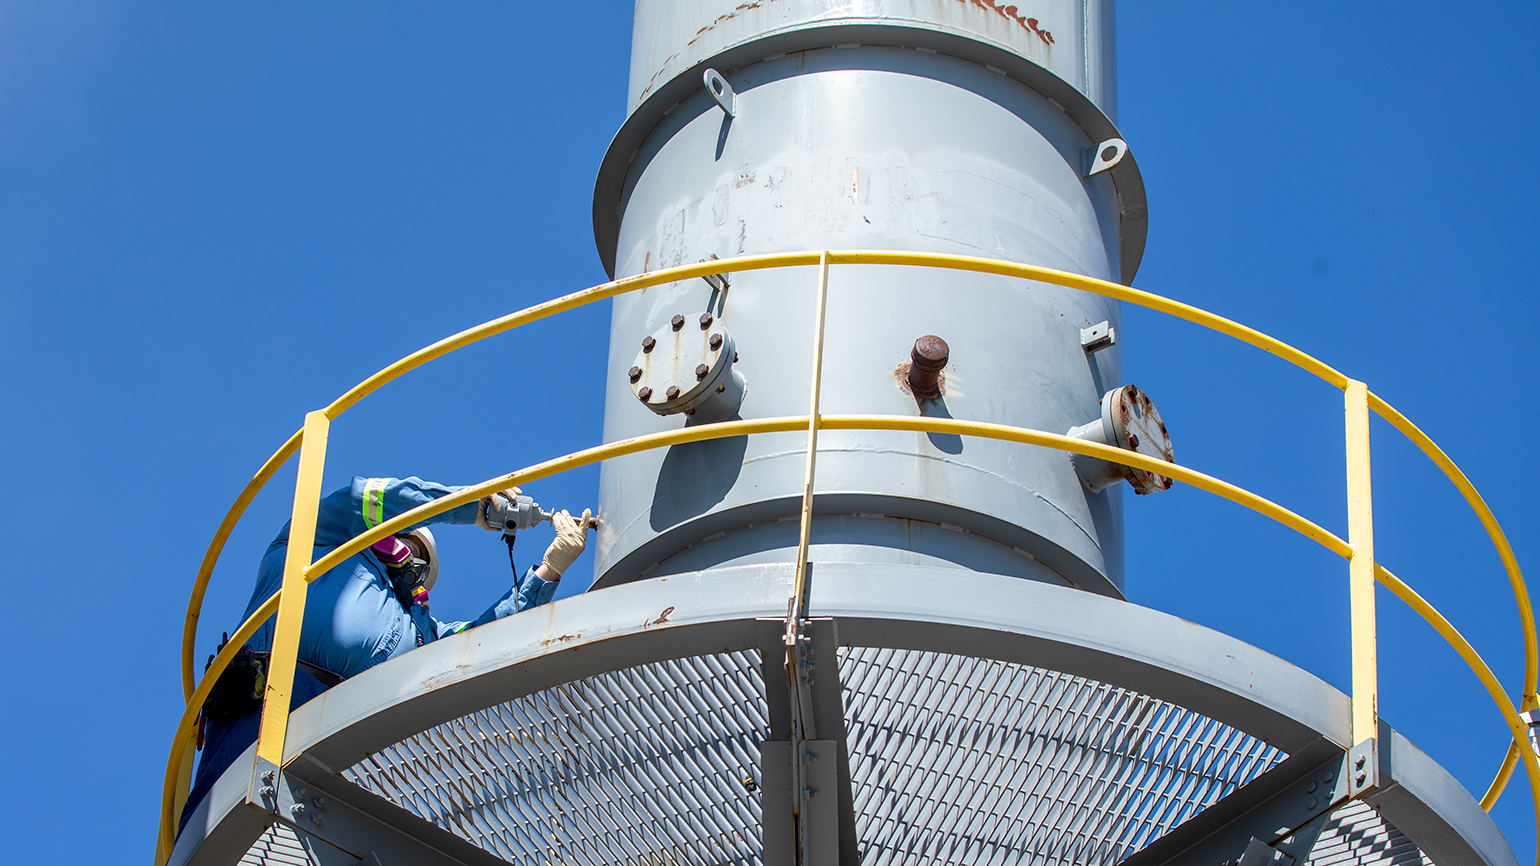 An employee is using a probe to evaluate air emissions from a stack.